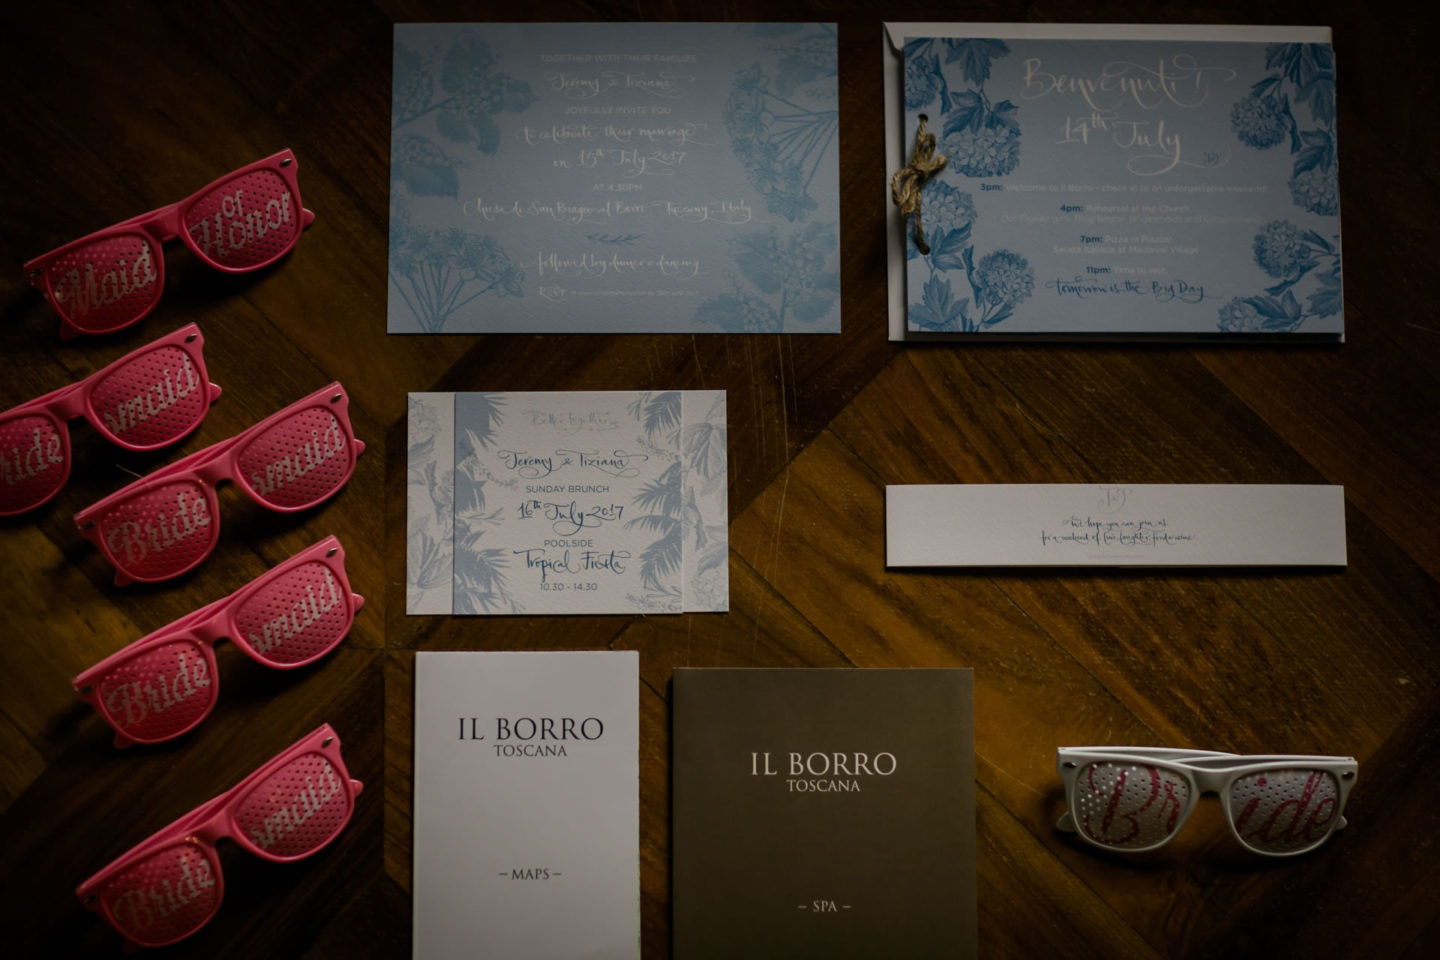 Glasses :: Amazing wedding day at Il Borro :: Luxury wedding photography - 1 :: Glasses